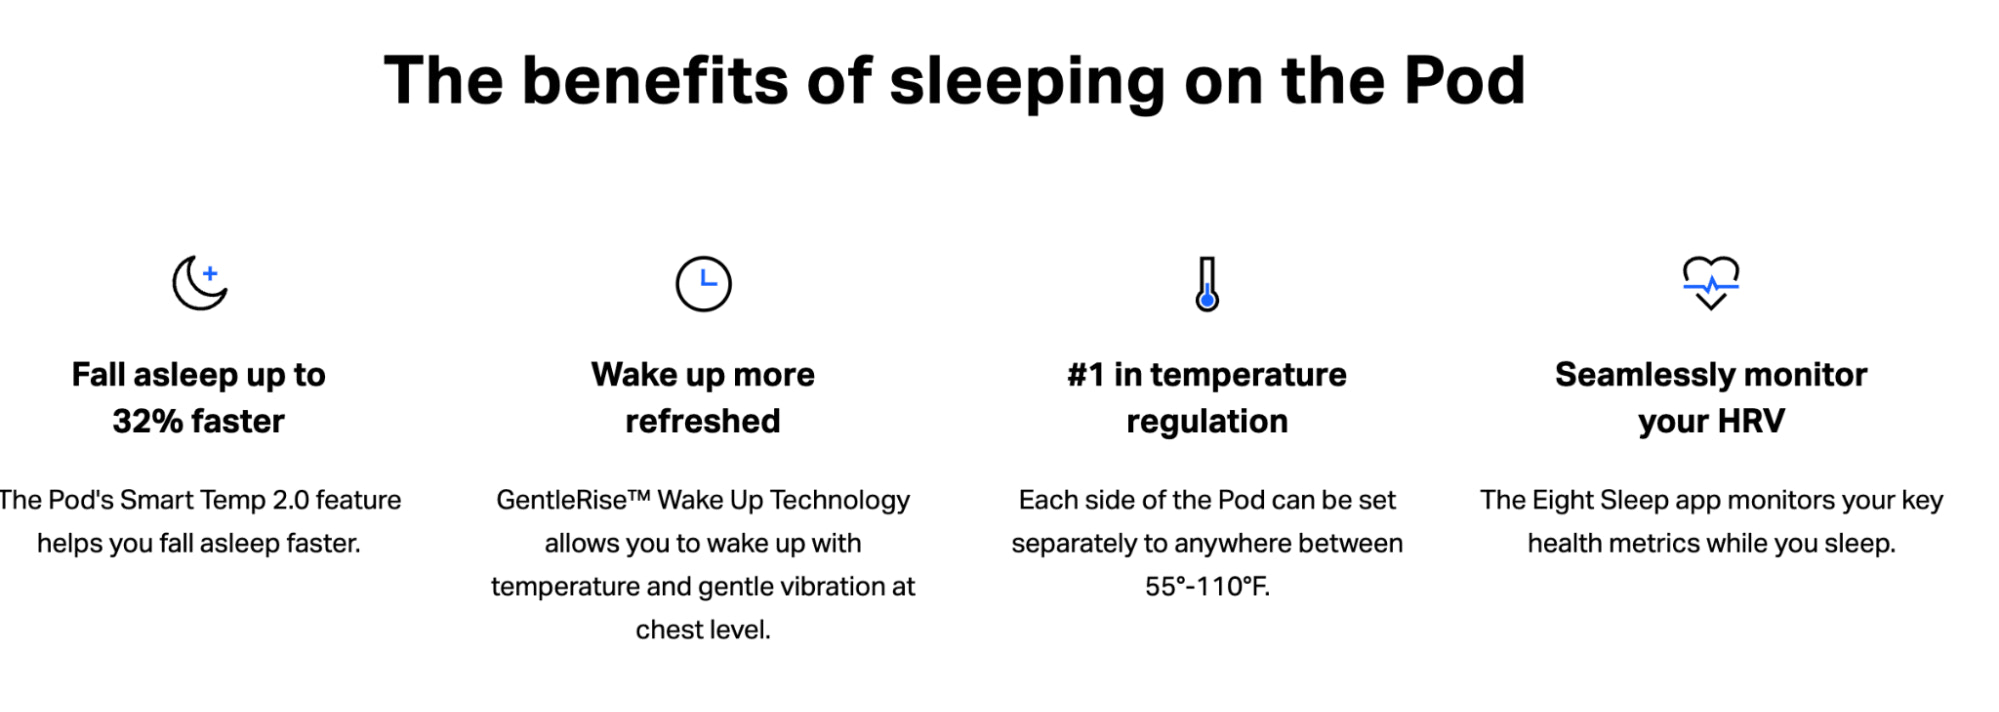 Eight Sleep focuses on benefits over features in their copywriting.